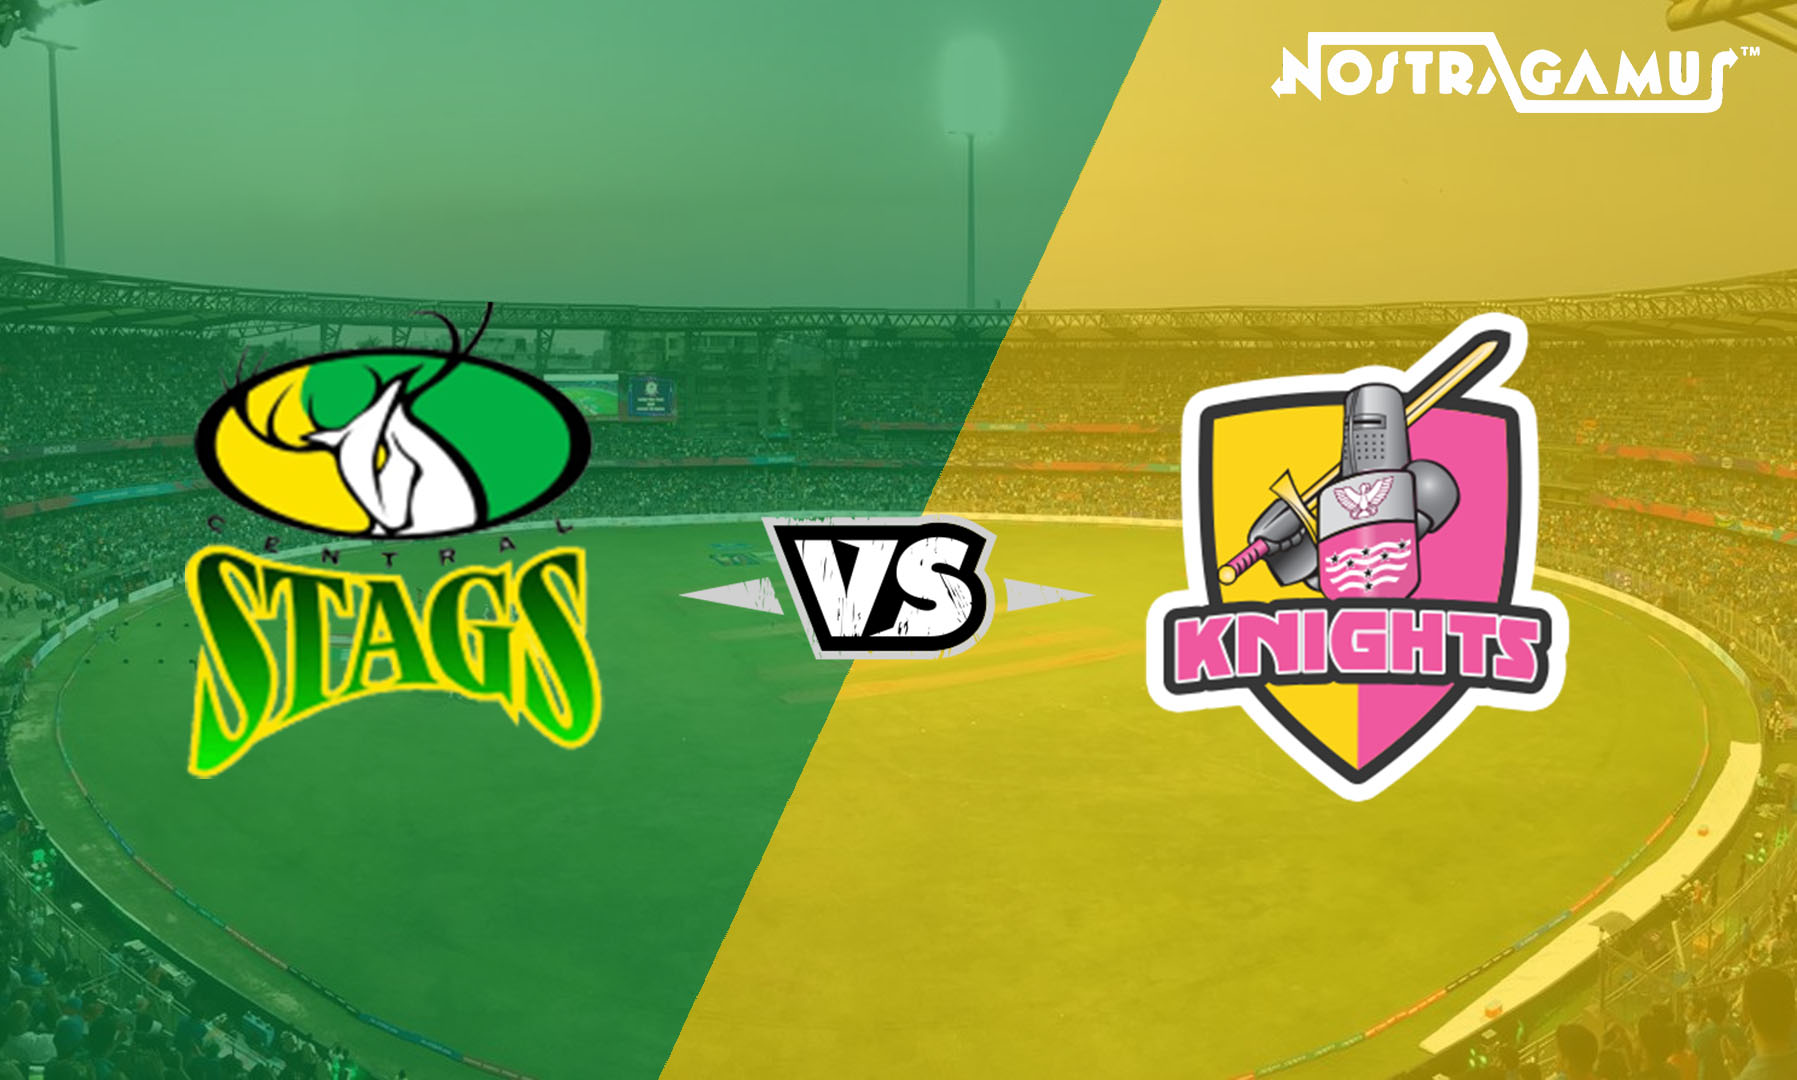 Super Smash Today Match Prediction: Central Stags vs Northern Knights